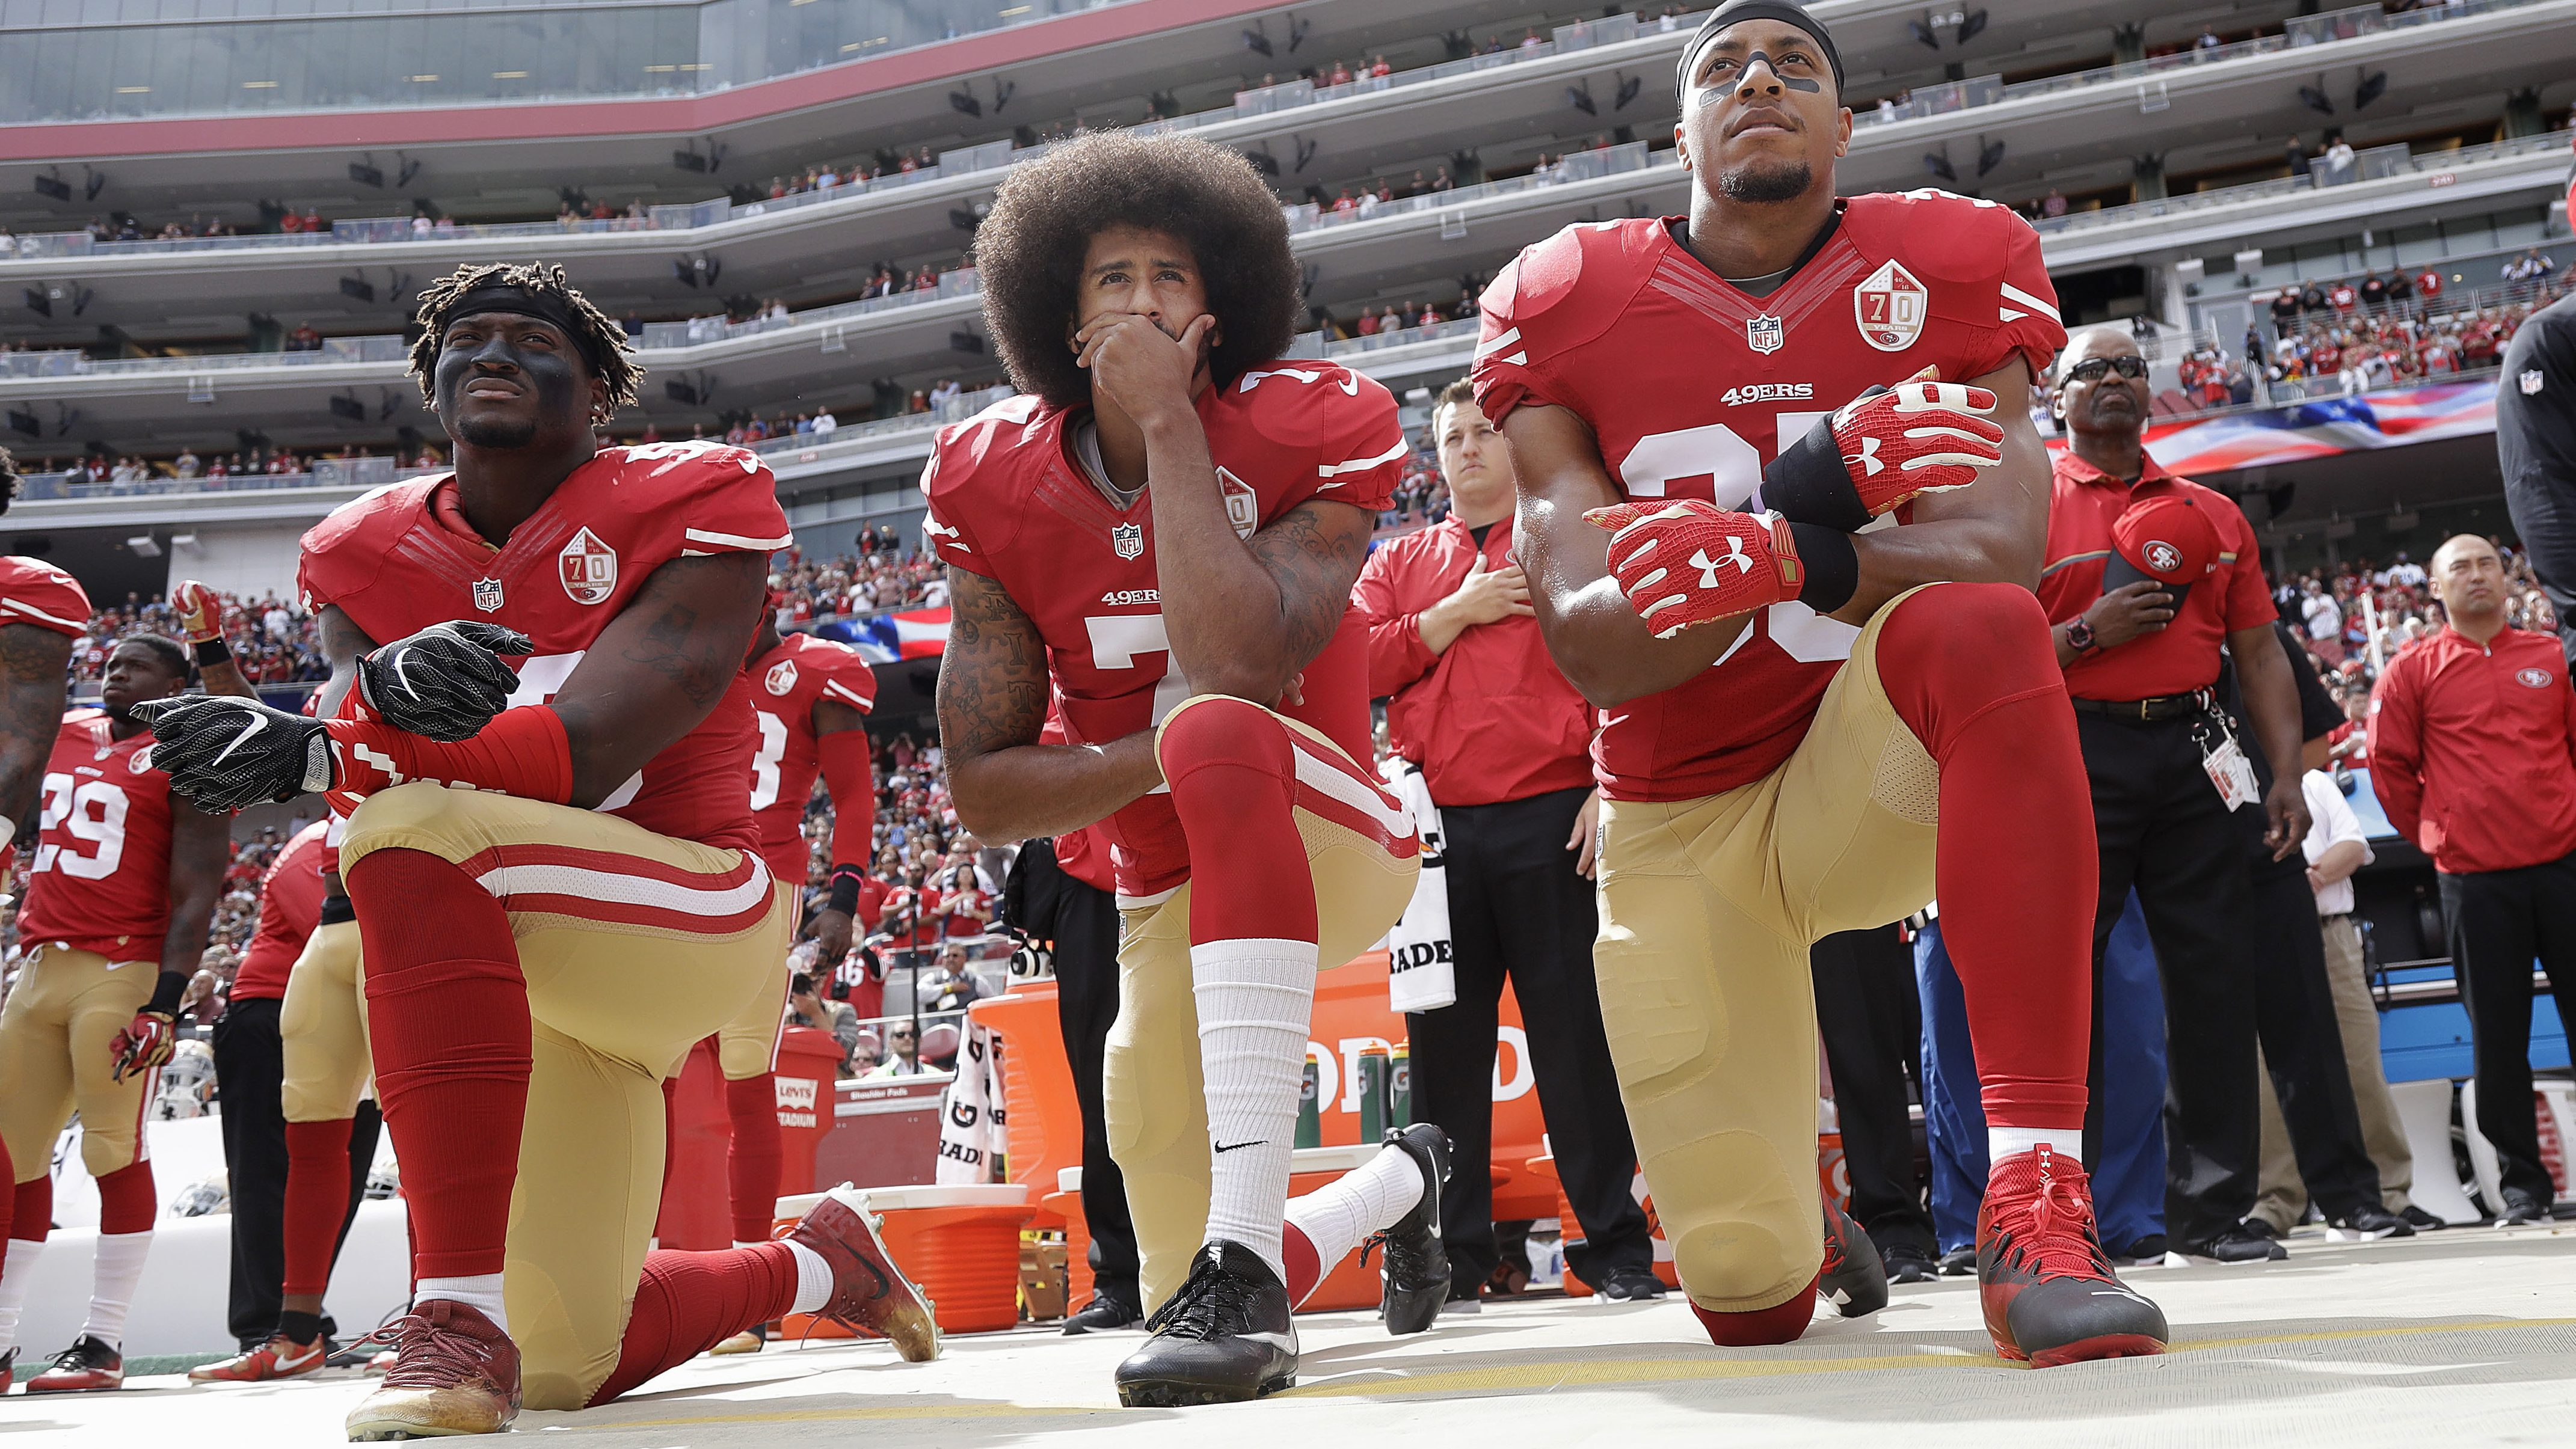 In this Oct. 2, 2016 file photo, from left, San Francisco 49ers outside linebacker Eli Harold, quarterback Colin Kaepernick and safety Eric Reid kneel during the national anthem before an NFL football game against the Dallas Cowboys in Santa Clara, Calif. Since Kaepernick announced he would not stand for the song in protest of racial discrimination against blacks in the United States, many performers are now rethinking offers to sing the national anthem.